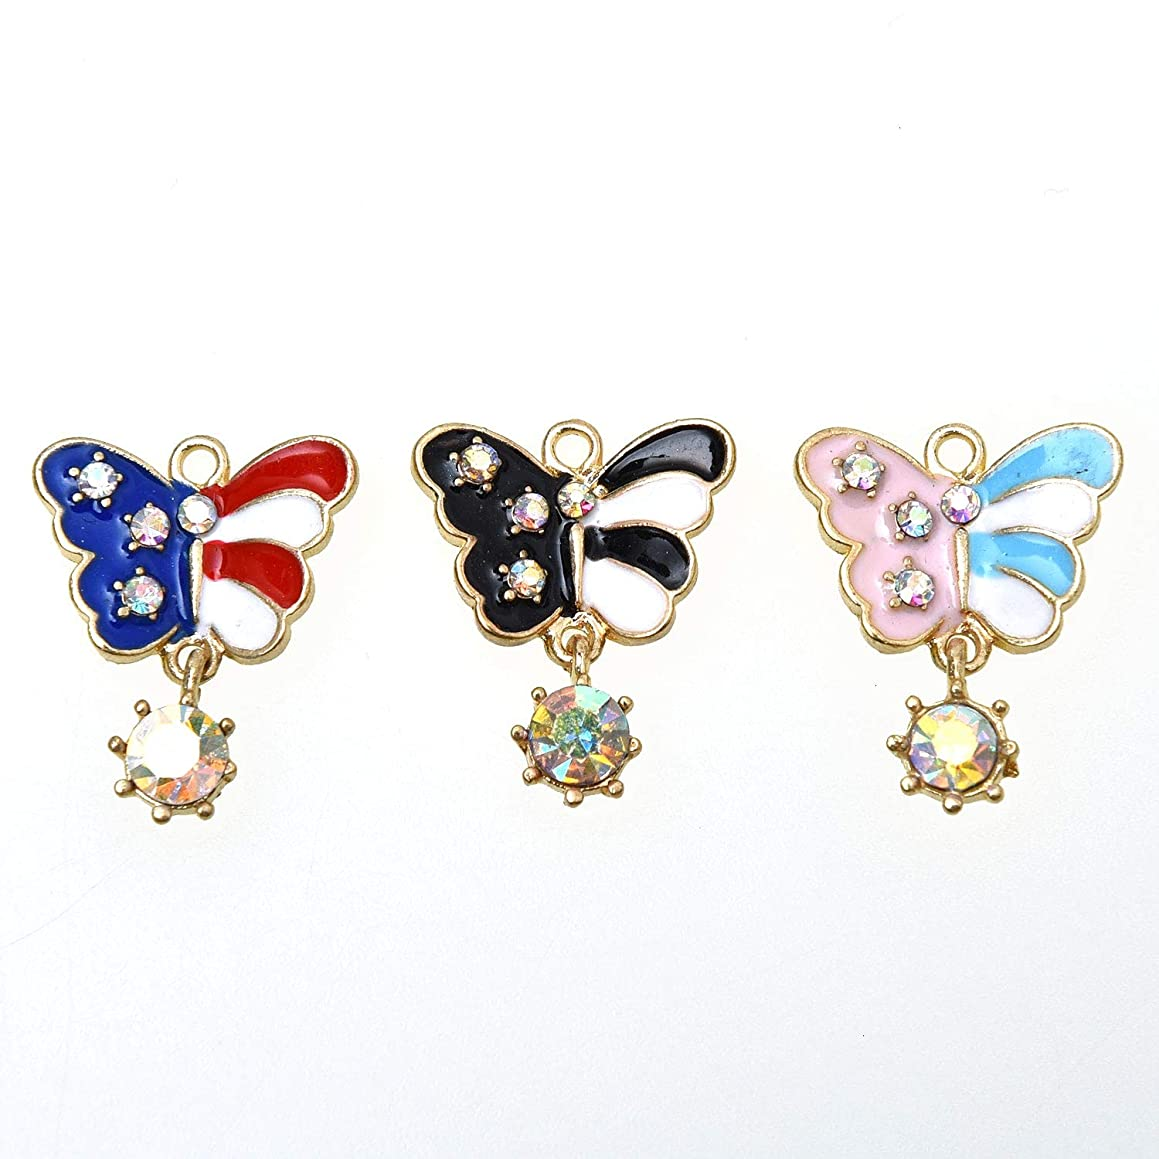 Monrocco 30 Pcs Enamel Butterfly Charm Pendants with Crystal for Crafting Jewelry Making Necklace